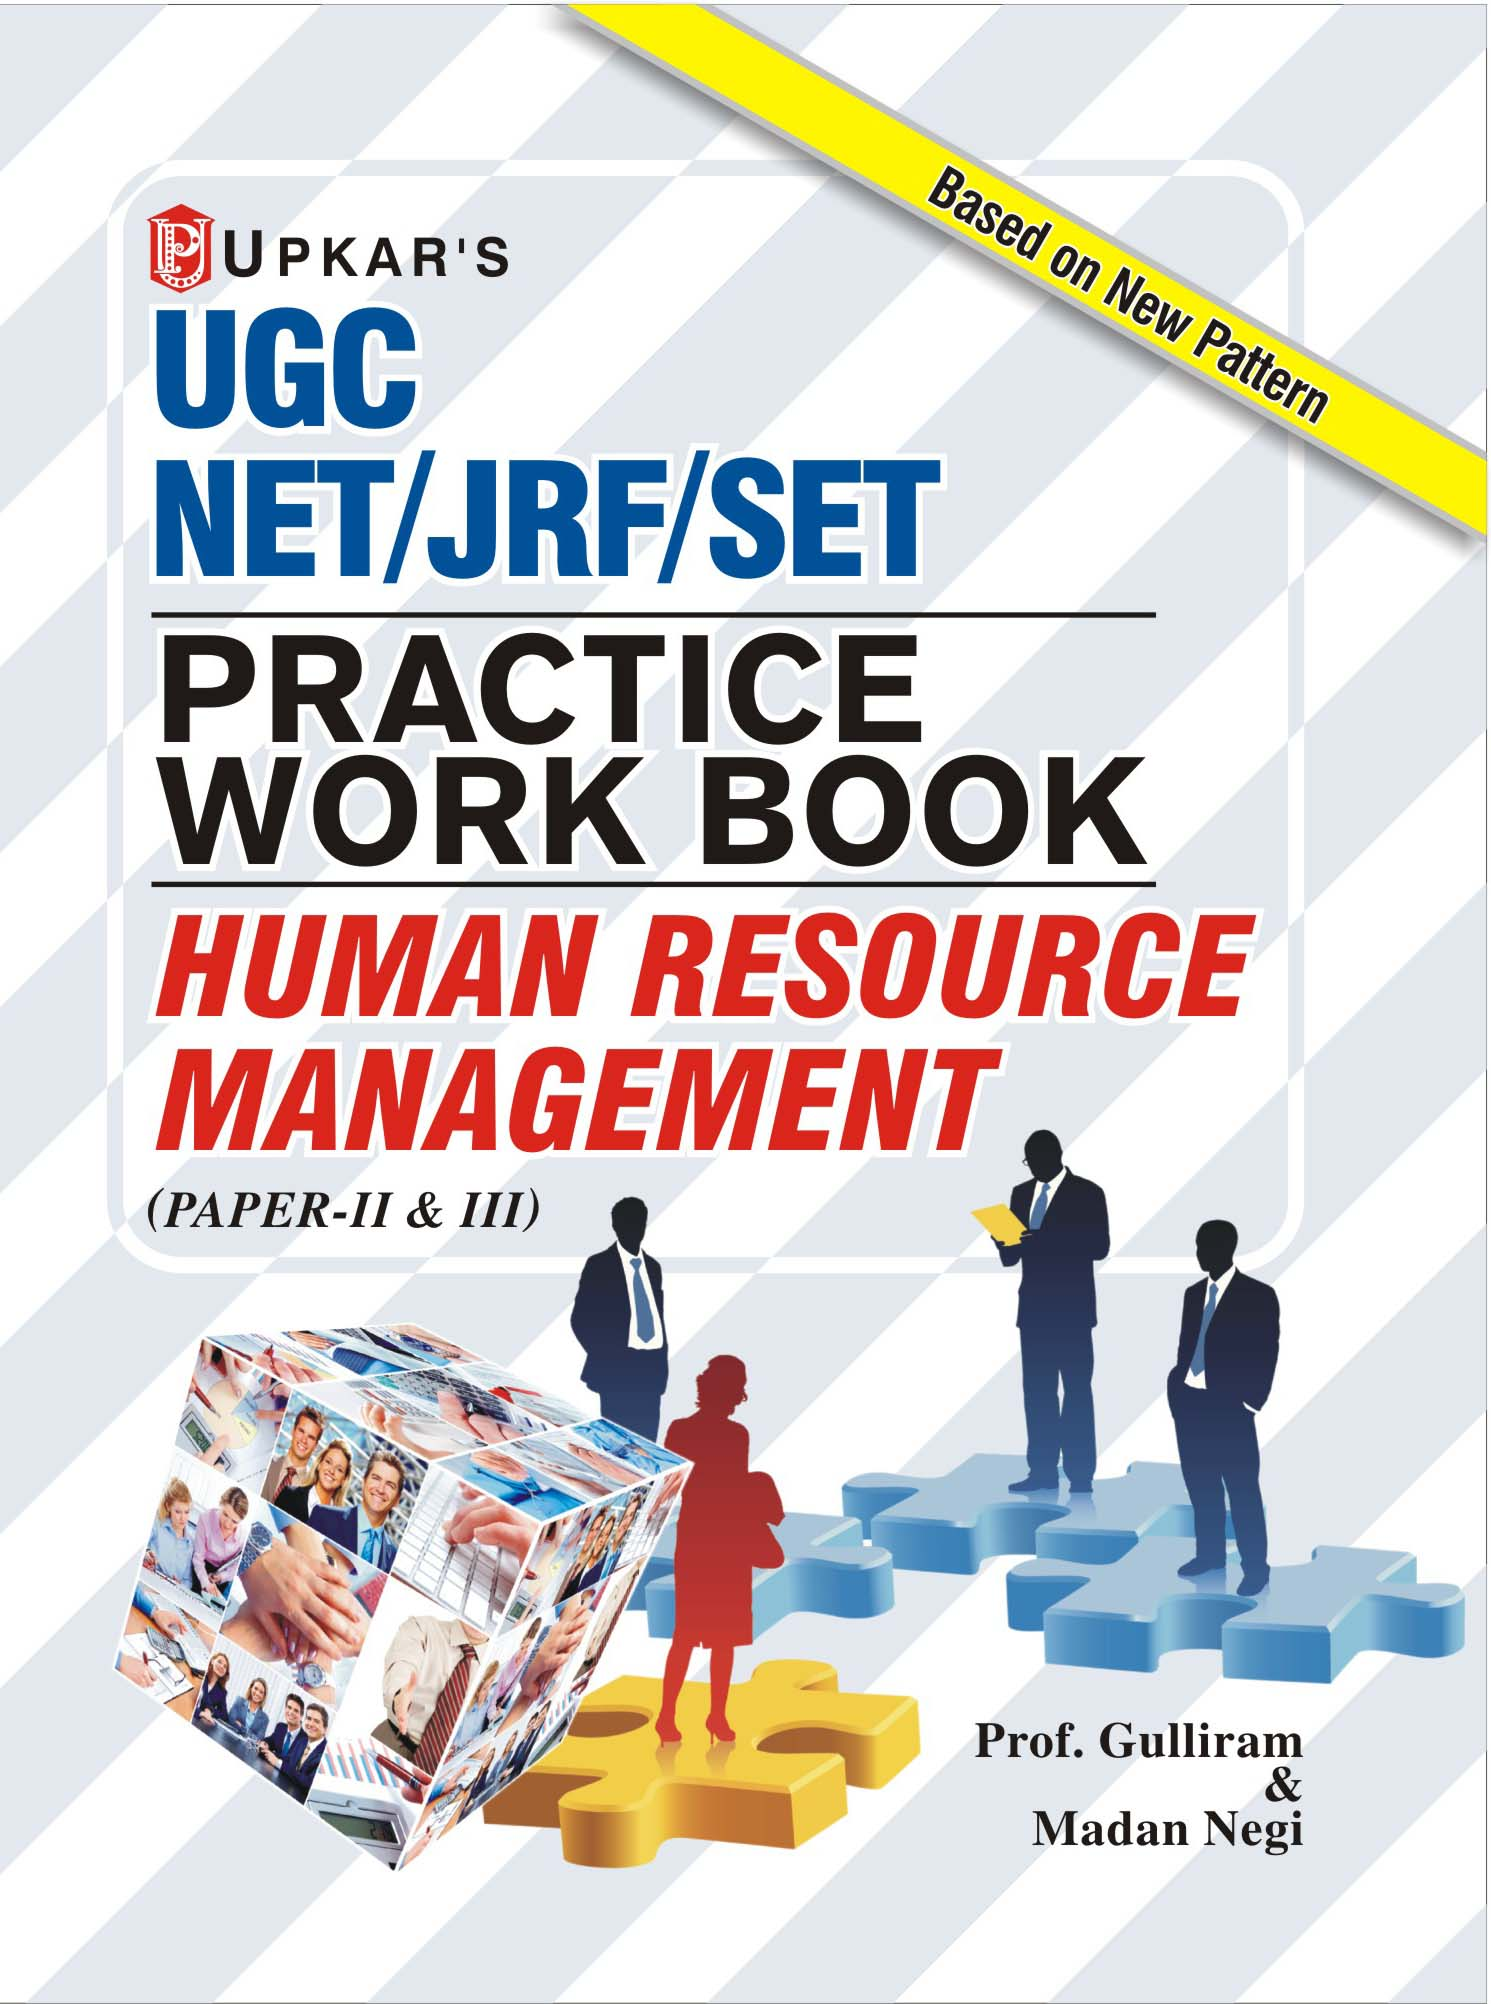 essay on human resource management in india Human resources management and strategy the economy of india this leads to a question of human resource management and strategy in a particular.